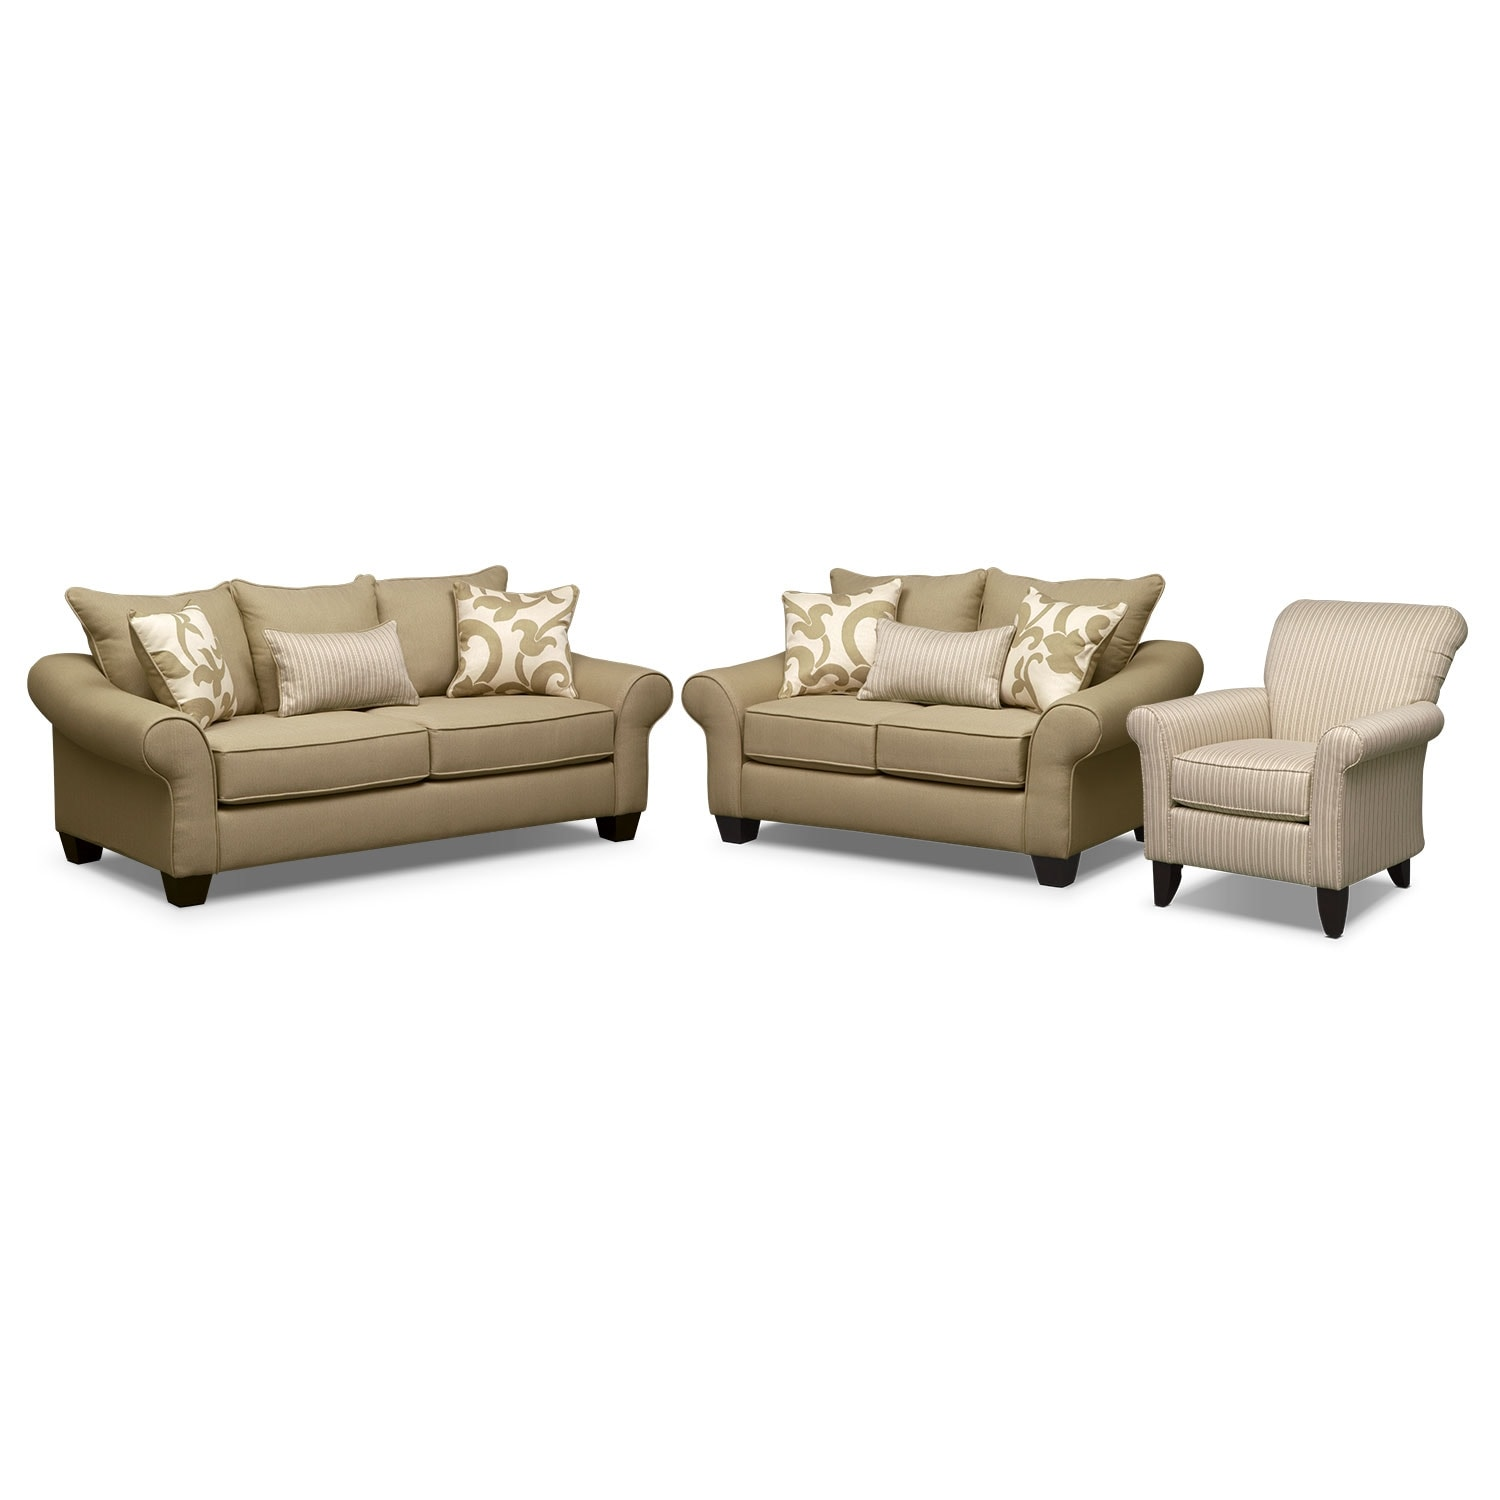 Colette Full Innerspring Sleeper Sofa, Loveseat and Accent Chair Set - Khaki